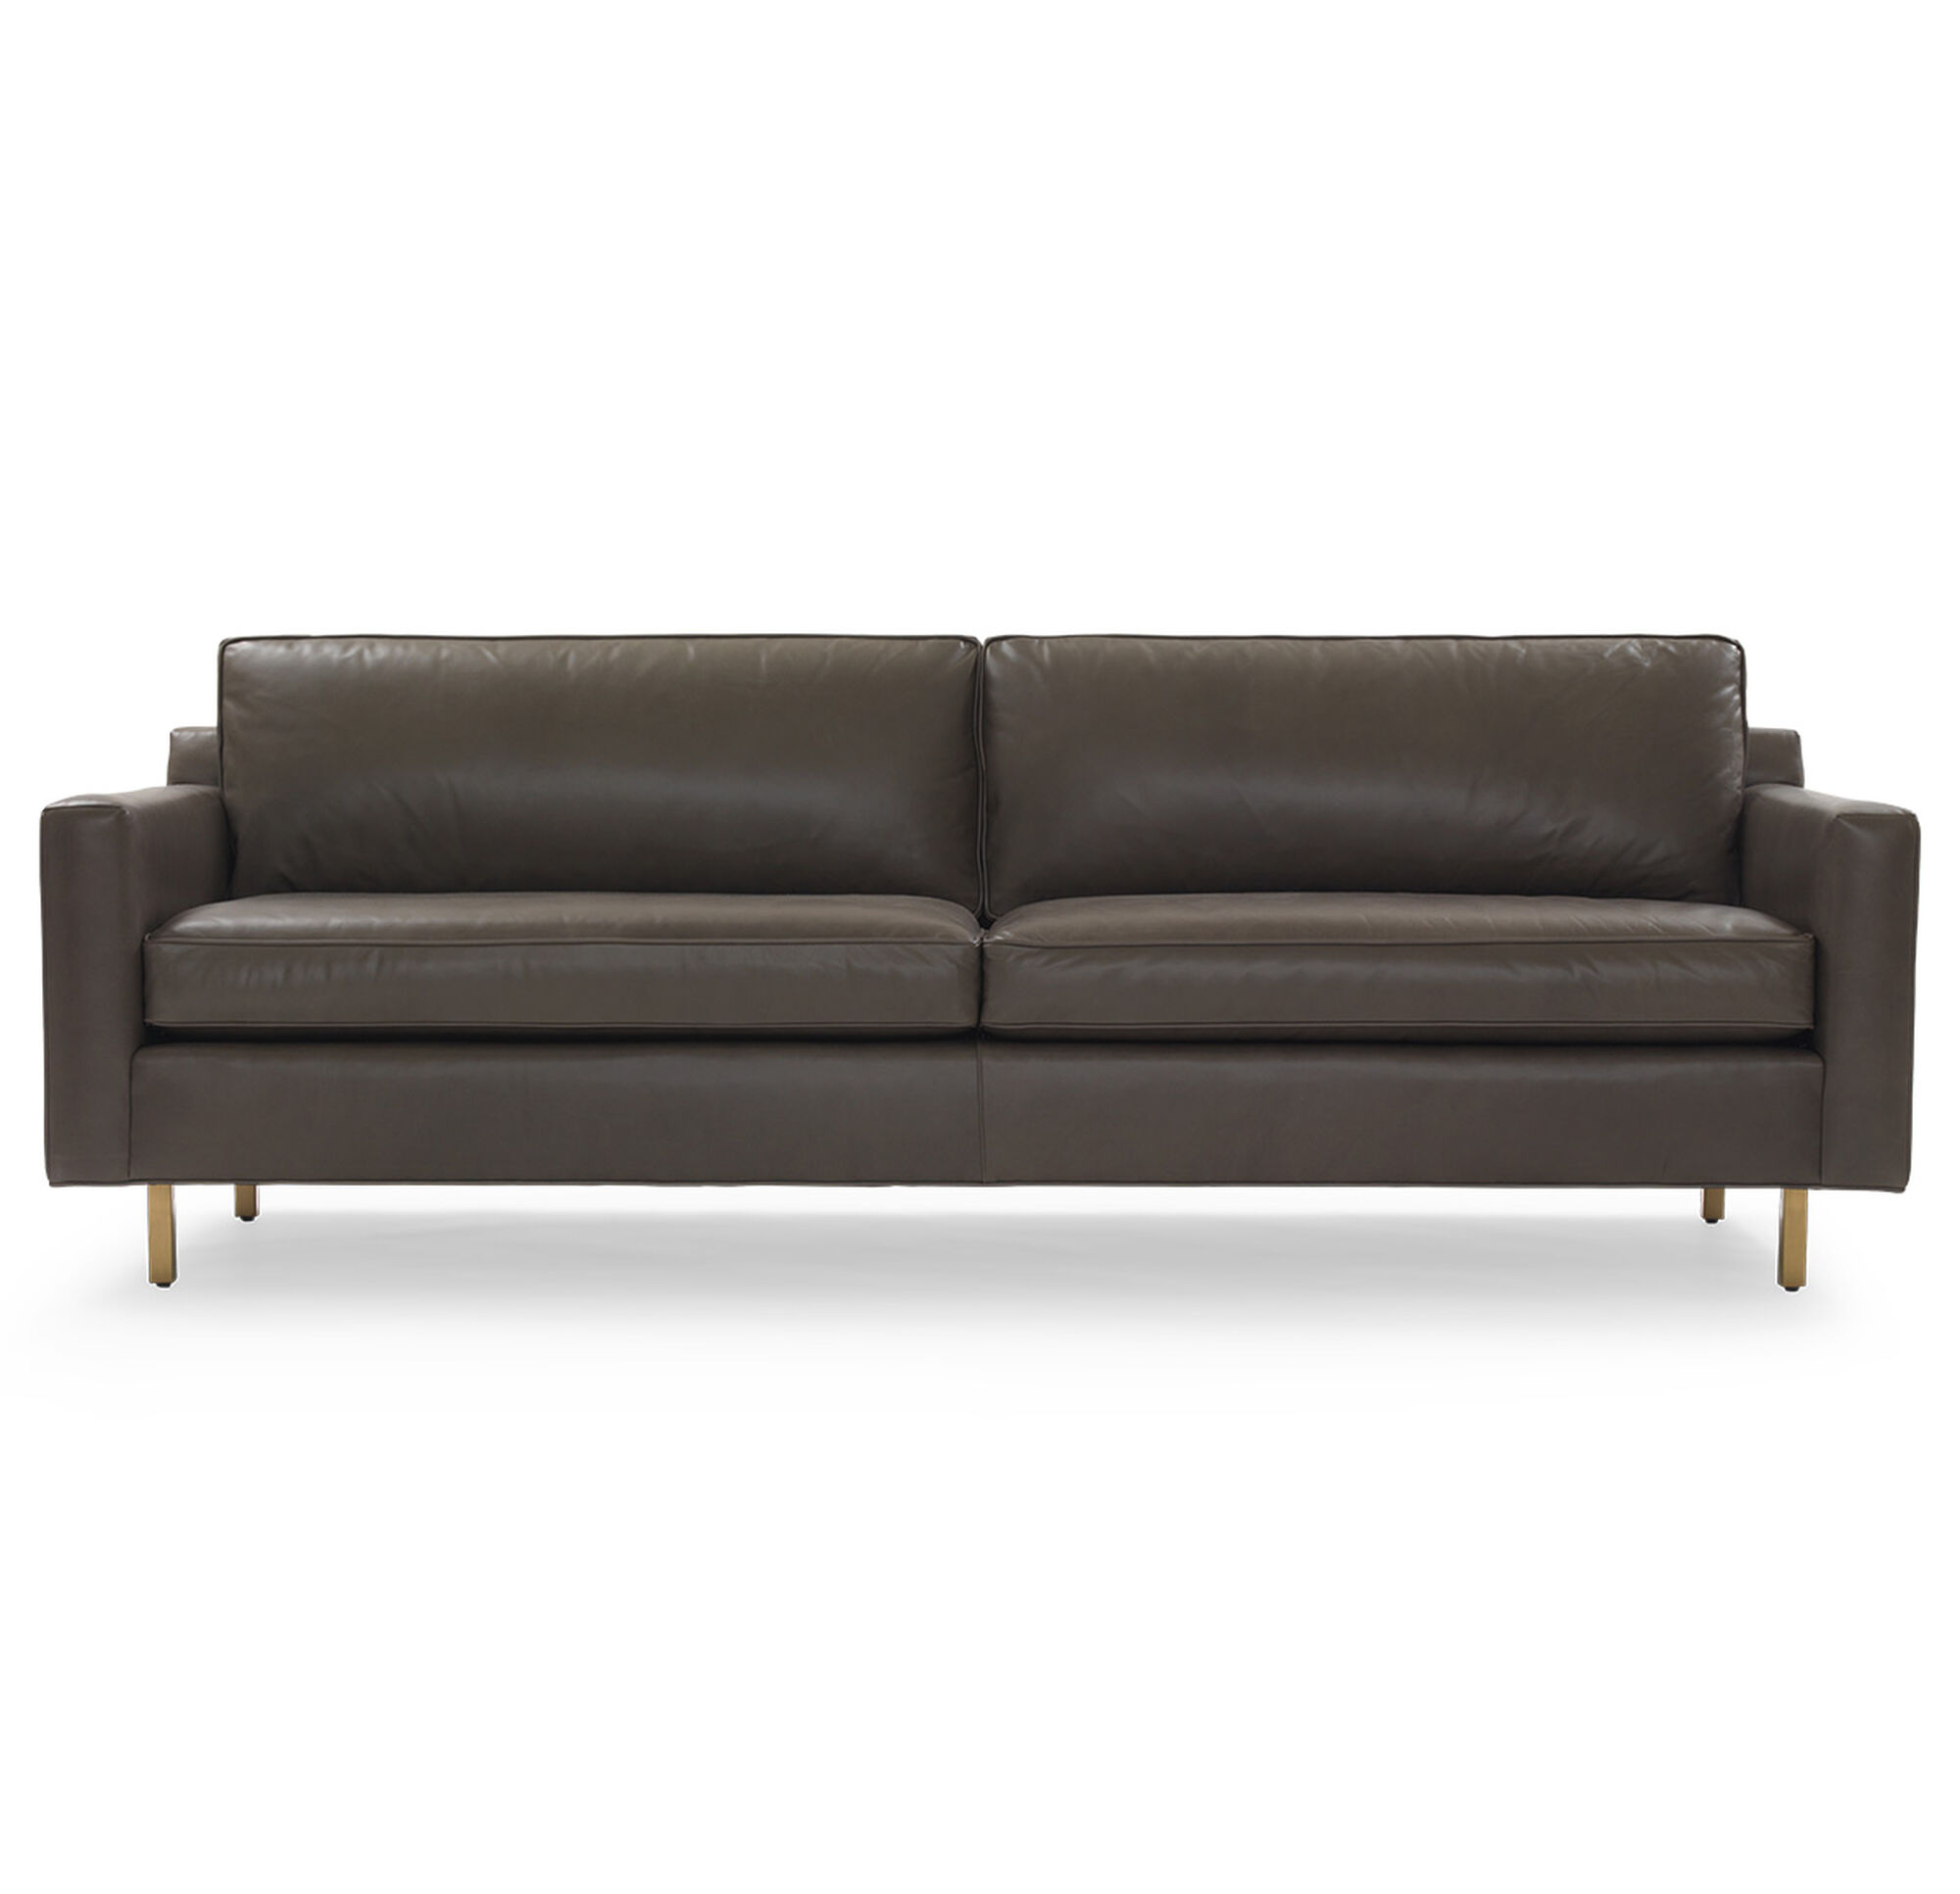 Leather Studio Sofa Dryden Leather Sofa Crate And Barrel